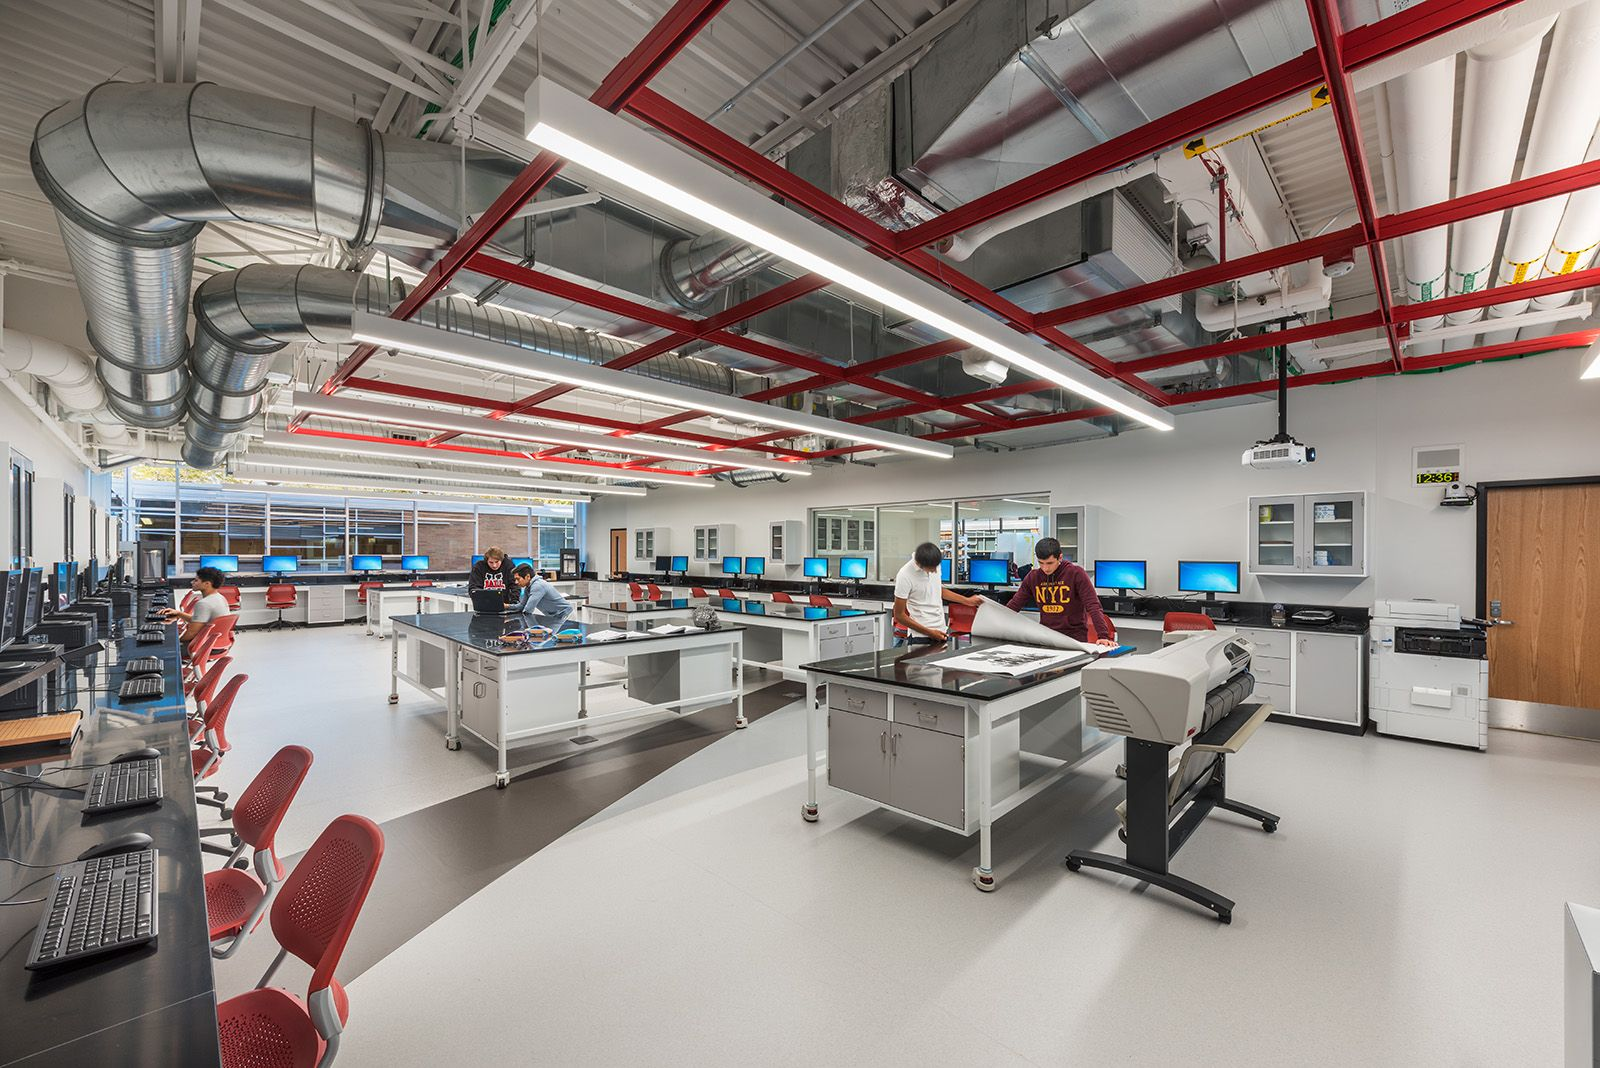 At Mundelein High School Students Use Technologies In The Project